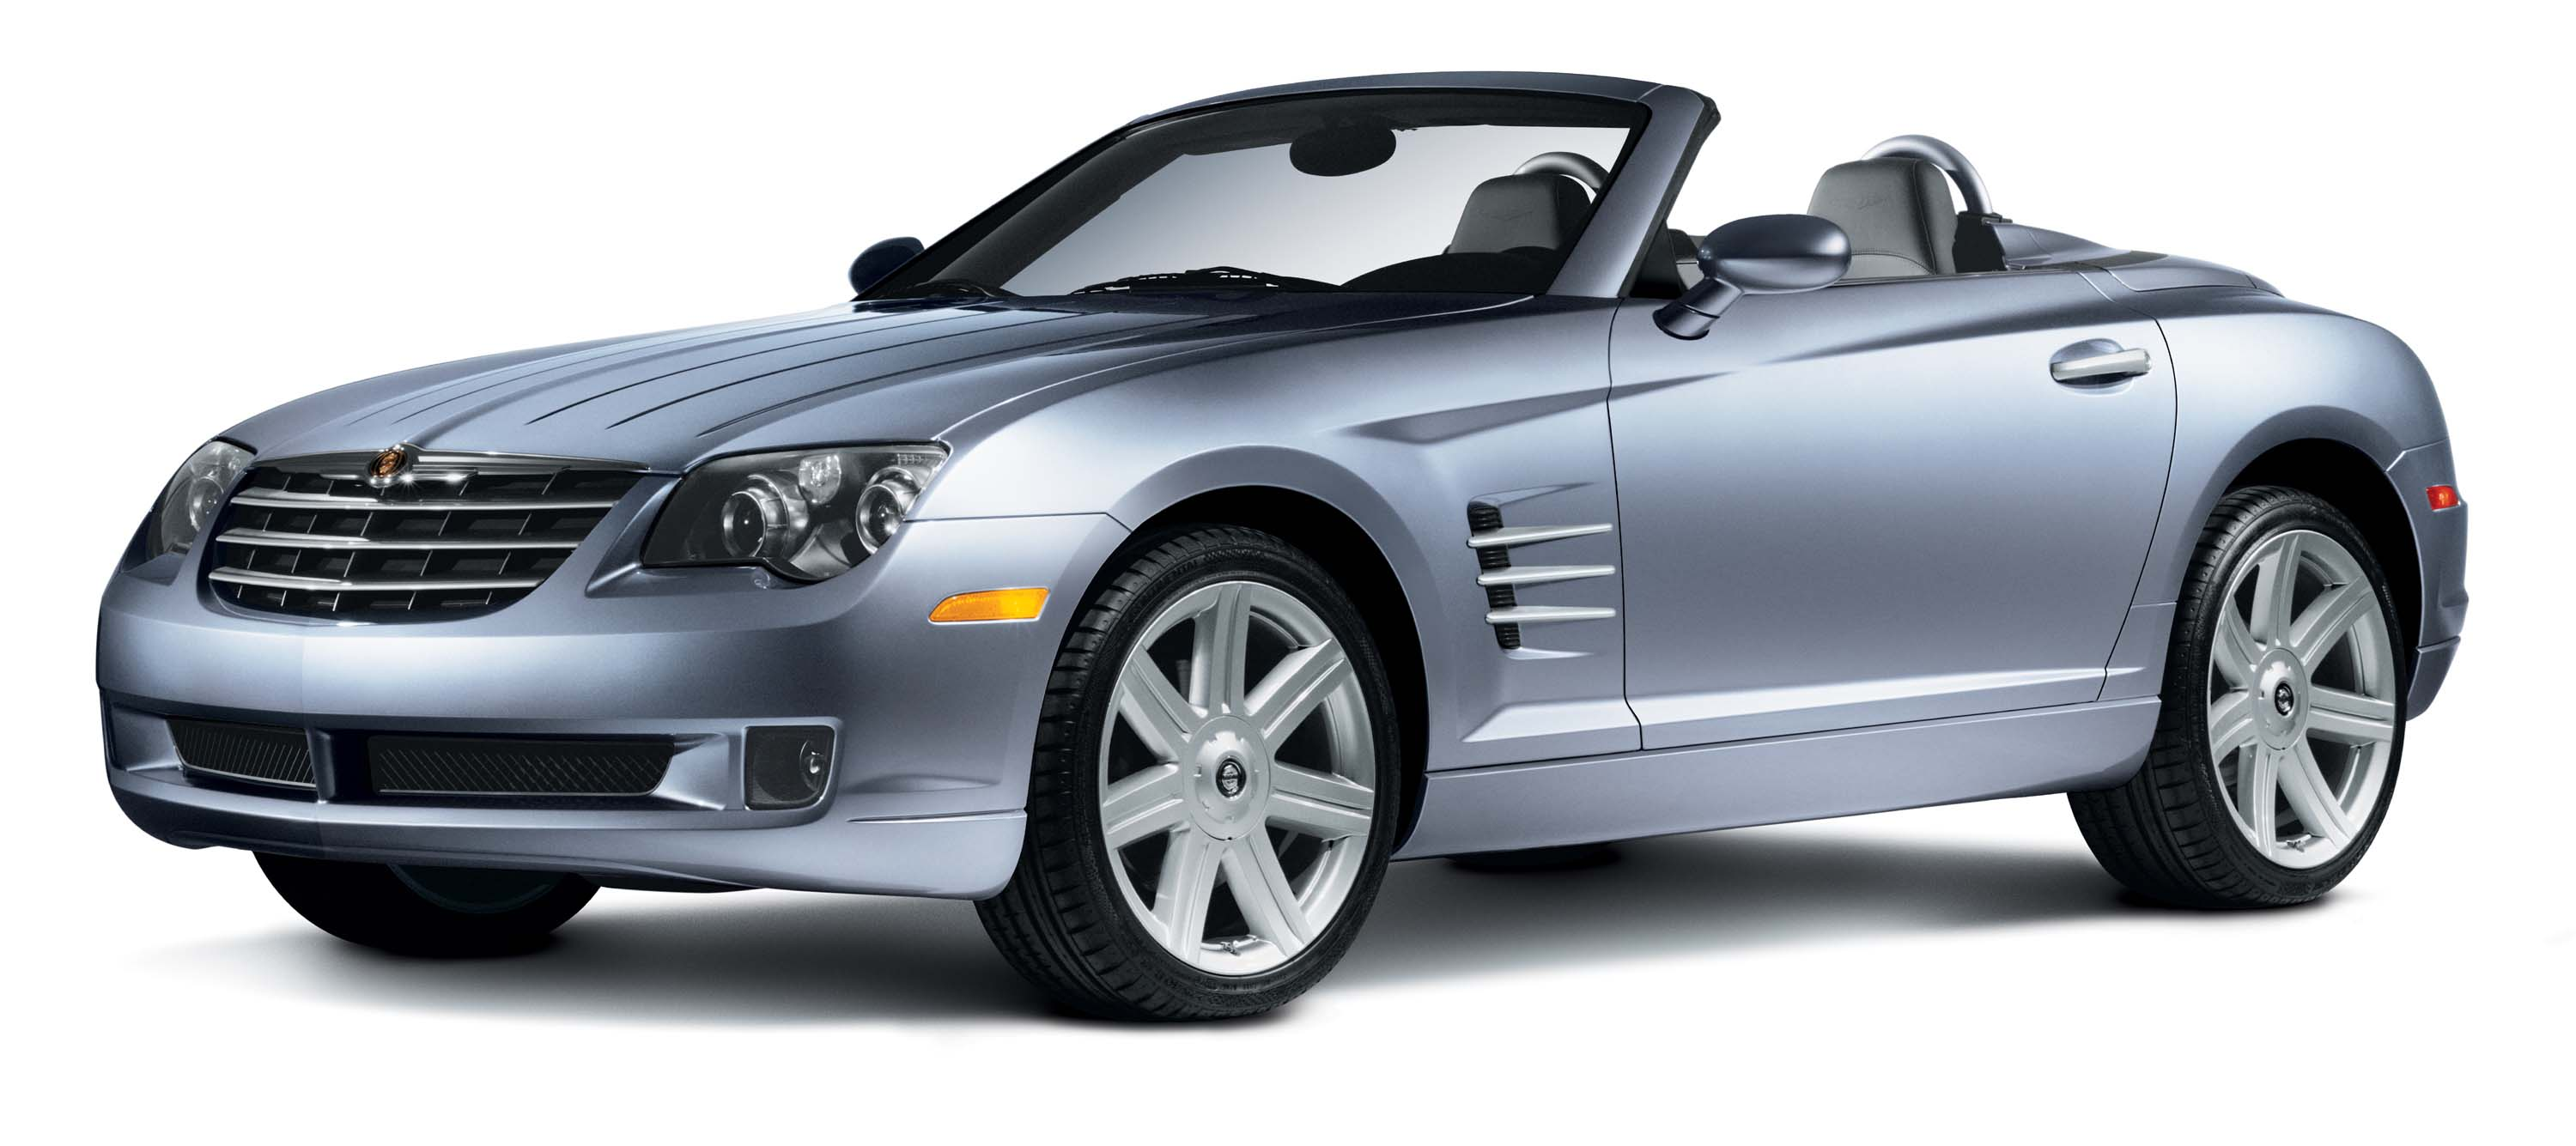 Chrysler Crossfire Roadster Present on 2004 chrysler crossfire